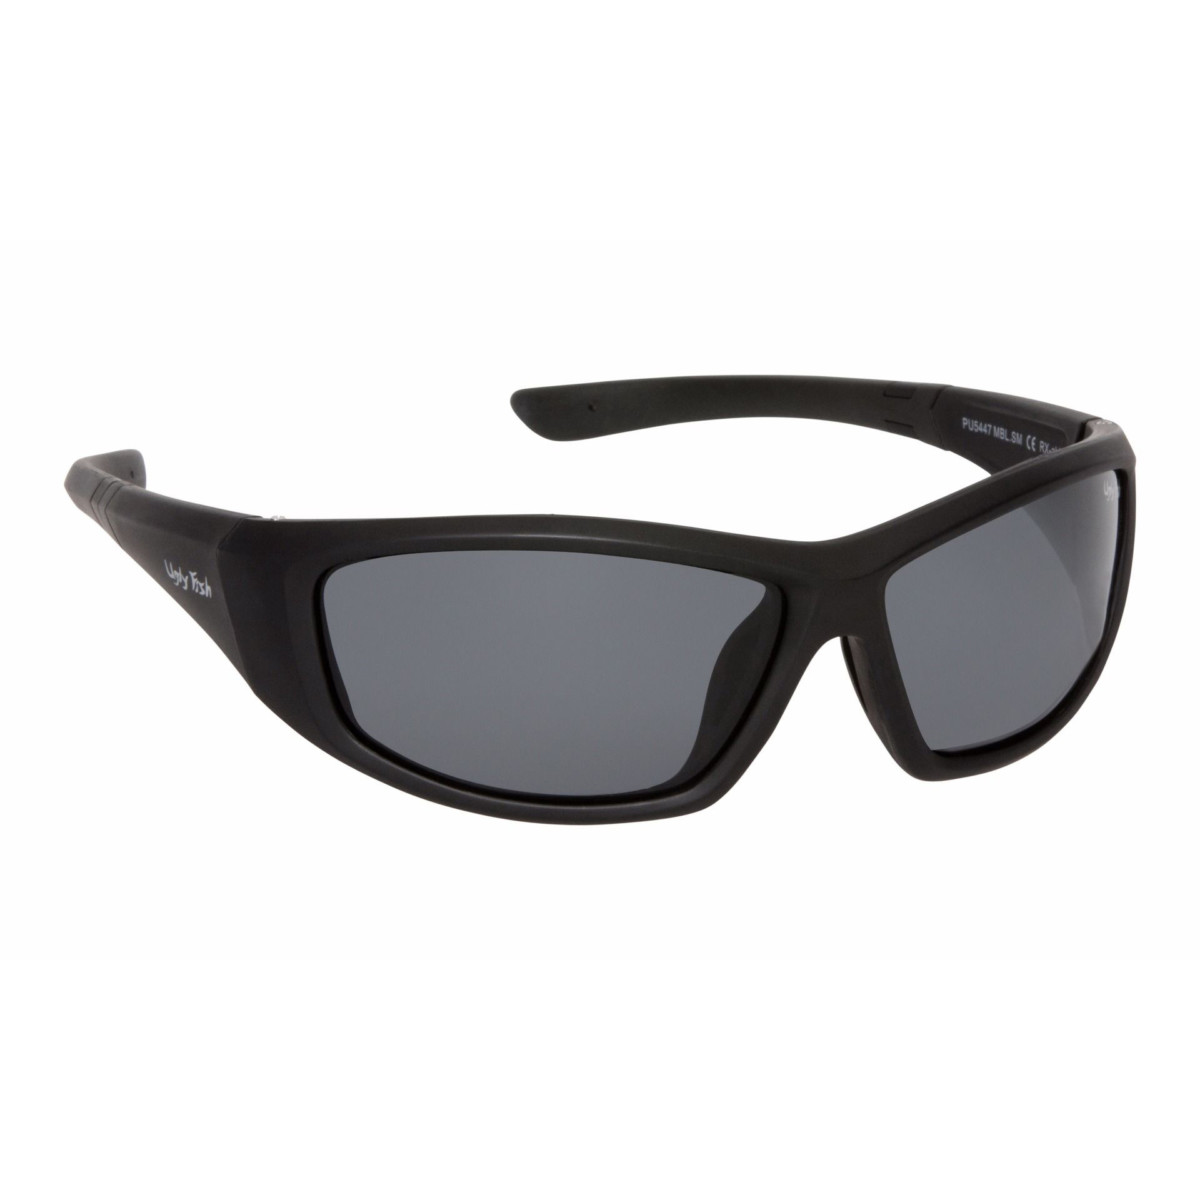 Ugly Fish PU5447 Sunglasses with Polarised lens and indestructible frame NEW